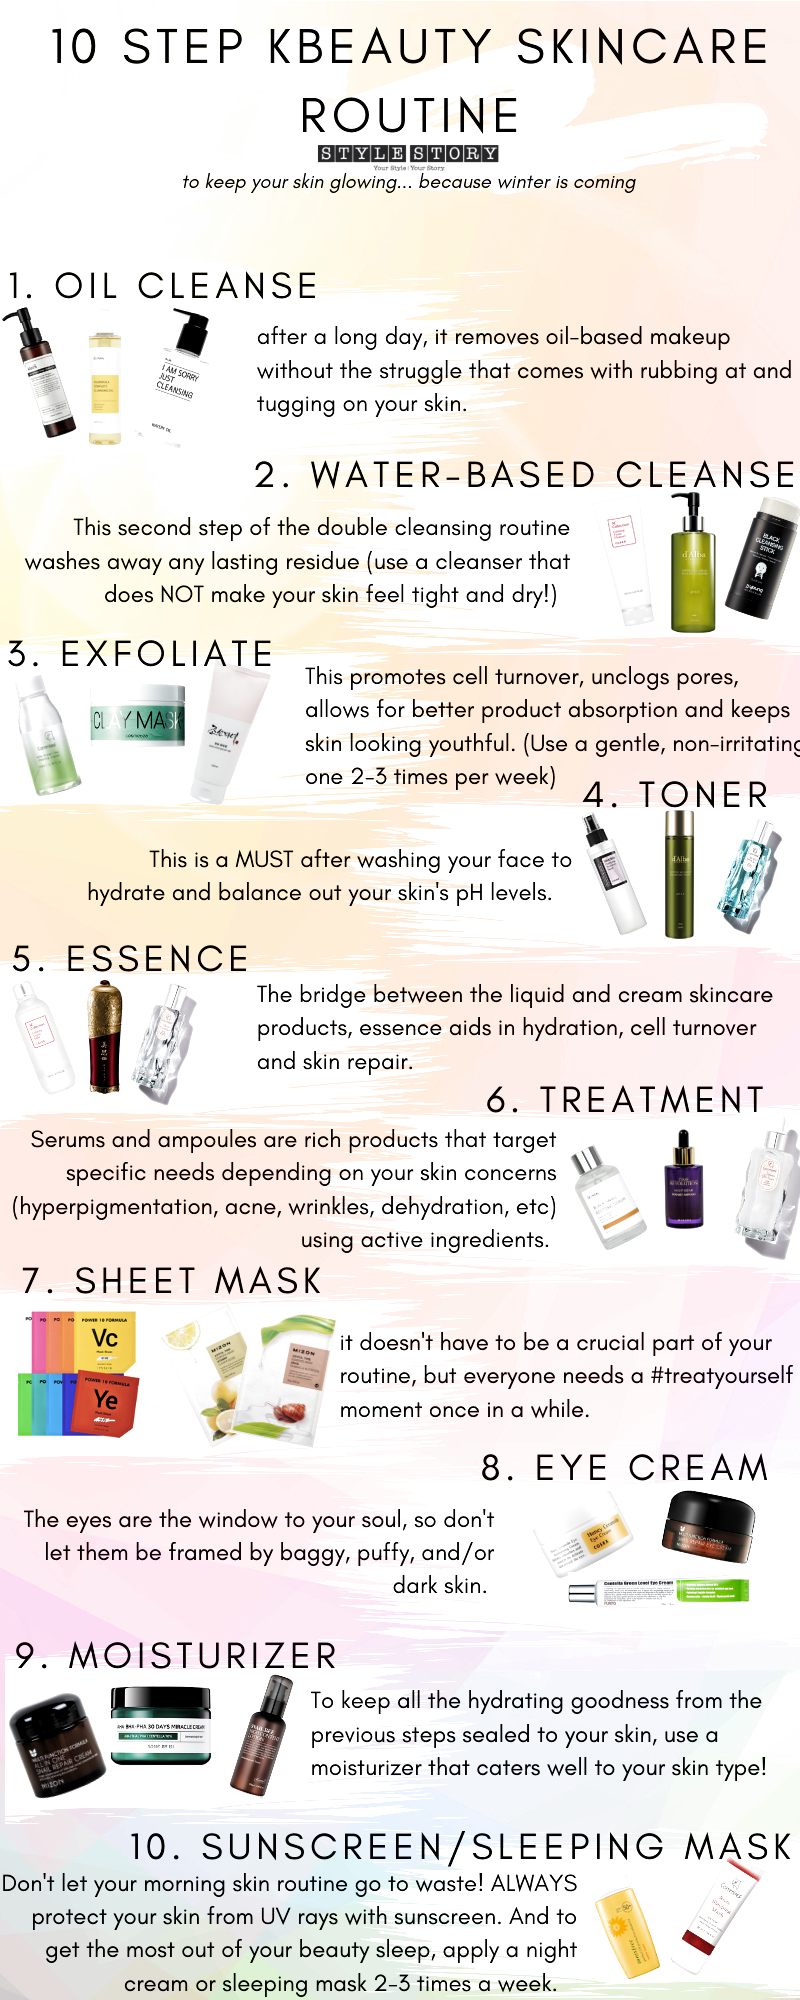 Everything You Need To Know About How To Apply Korean Beauty Products Kbeauty Routine Stylest K Beauty Routine Skin Care Routine Steps Korean Beauty Routine